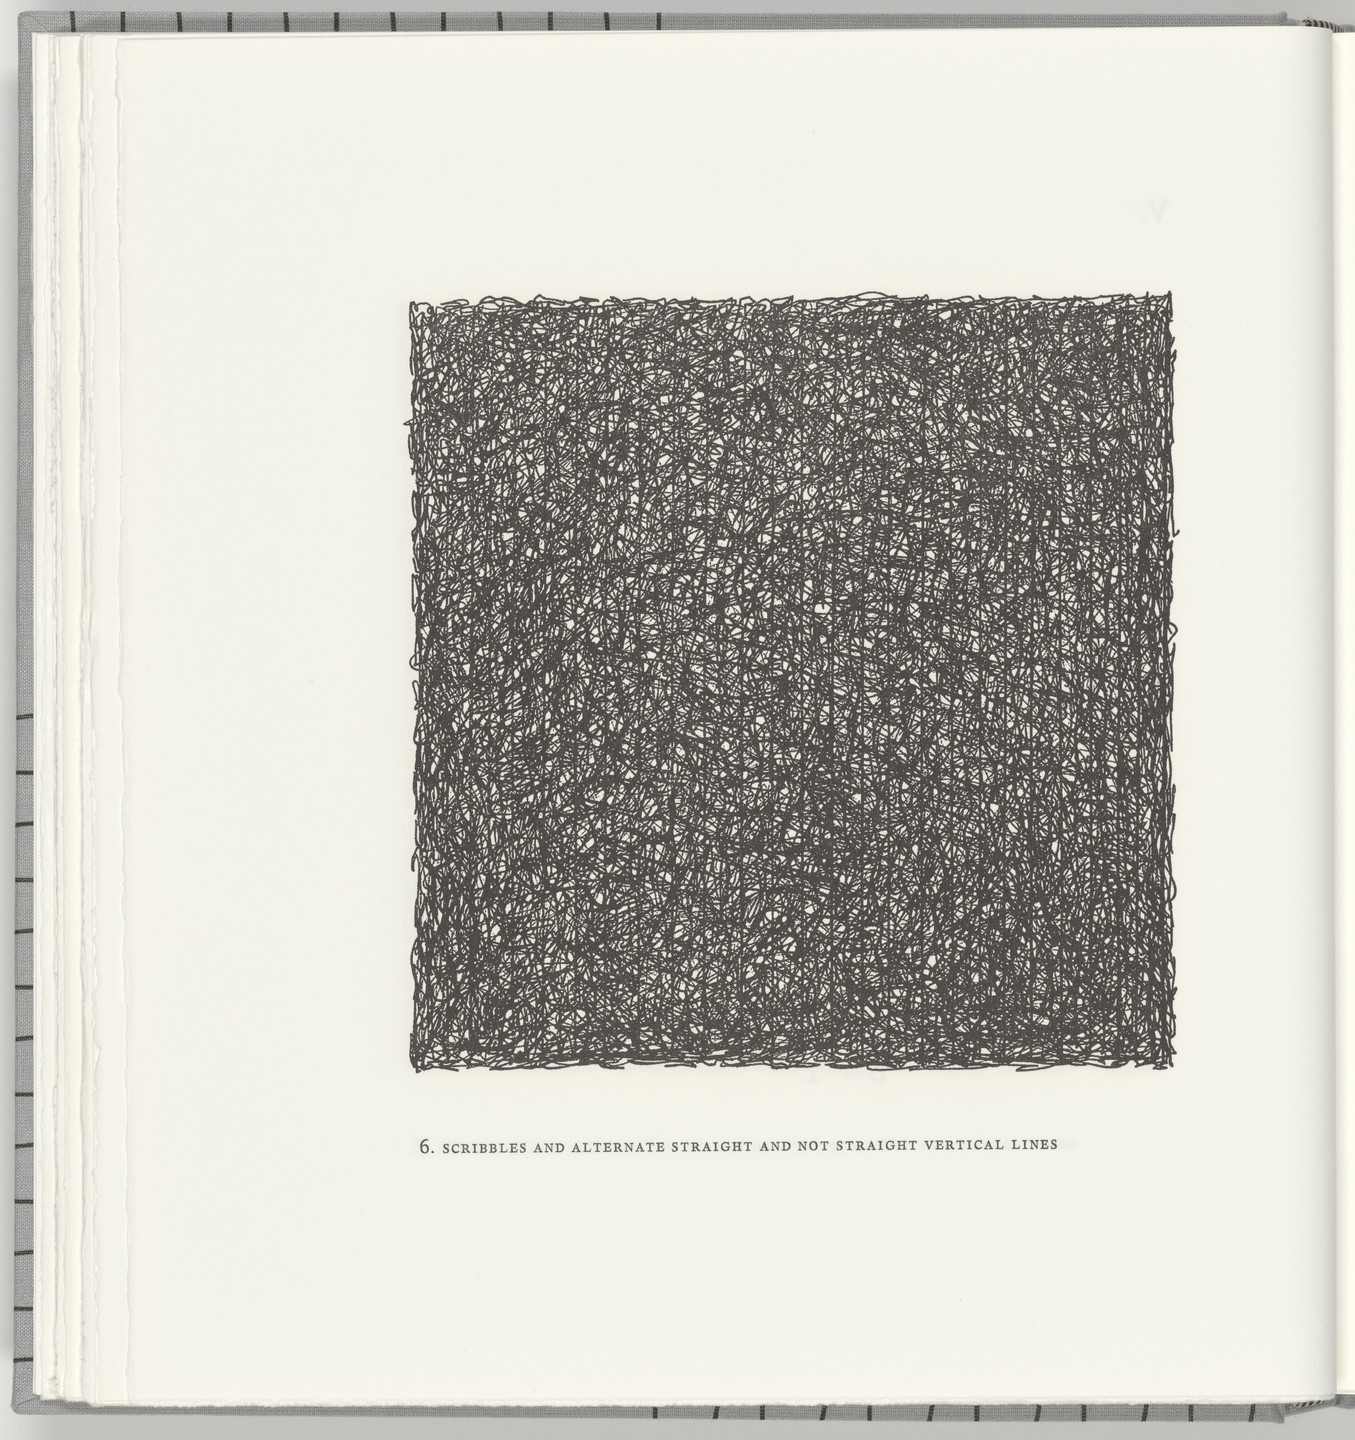 Sol LeWitt. Scribbles and Alternate Straight and Not Straight Vertical Lines (plate 6) from Squarings. 2003